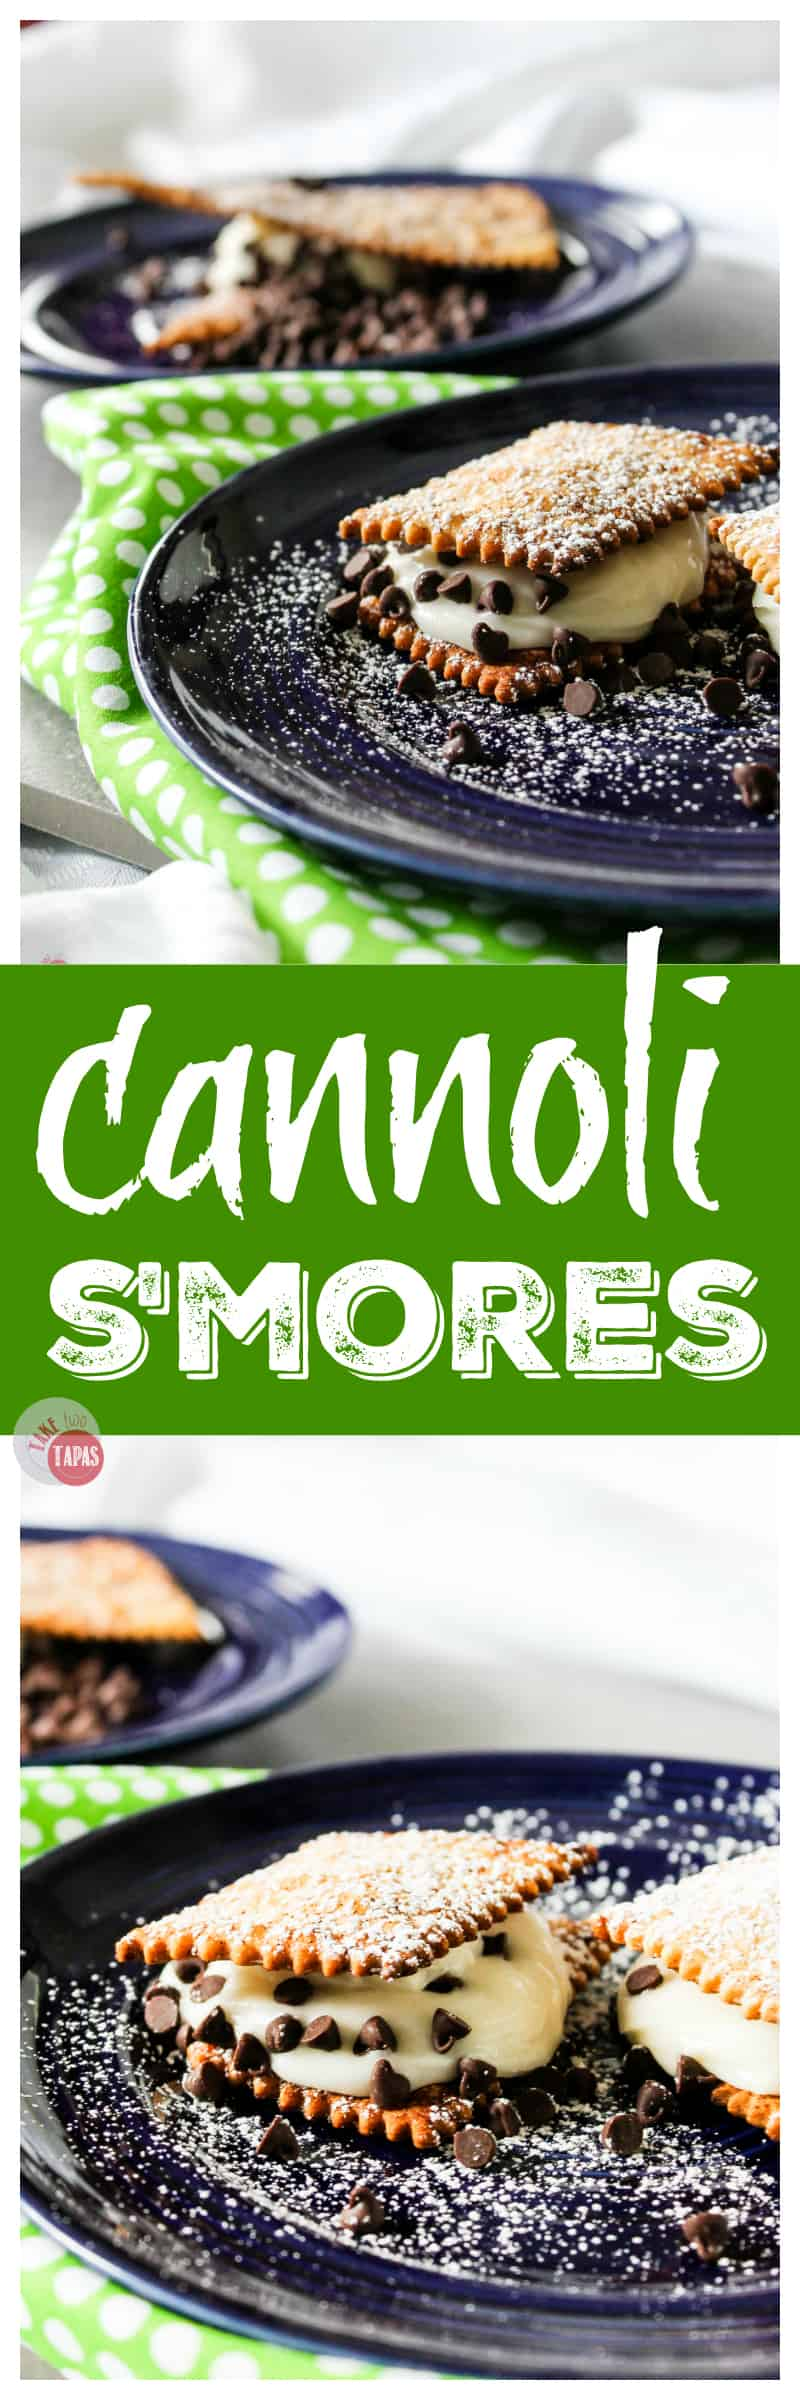 An easy way to make cannolis is to make my cannoli s'mores | Take Two Tapas